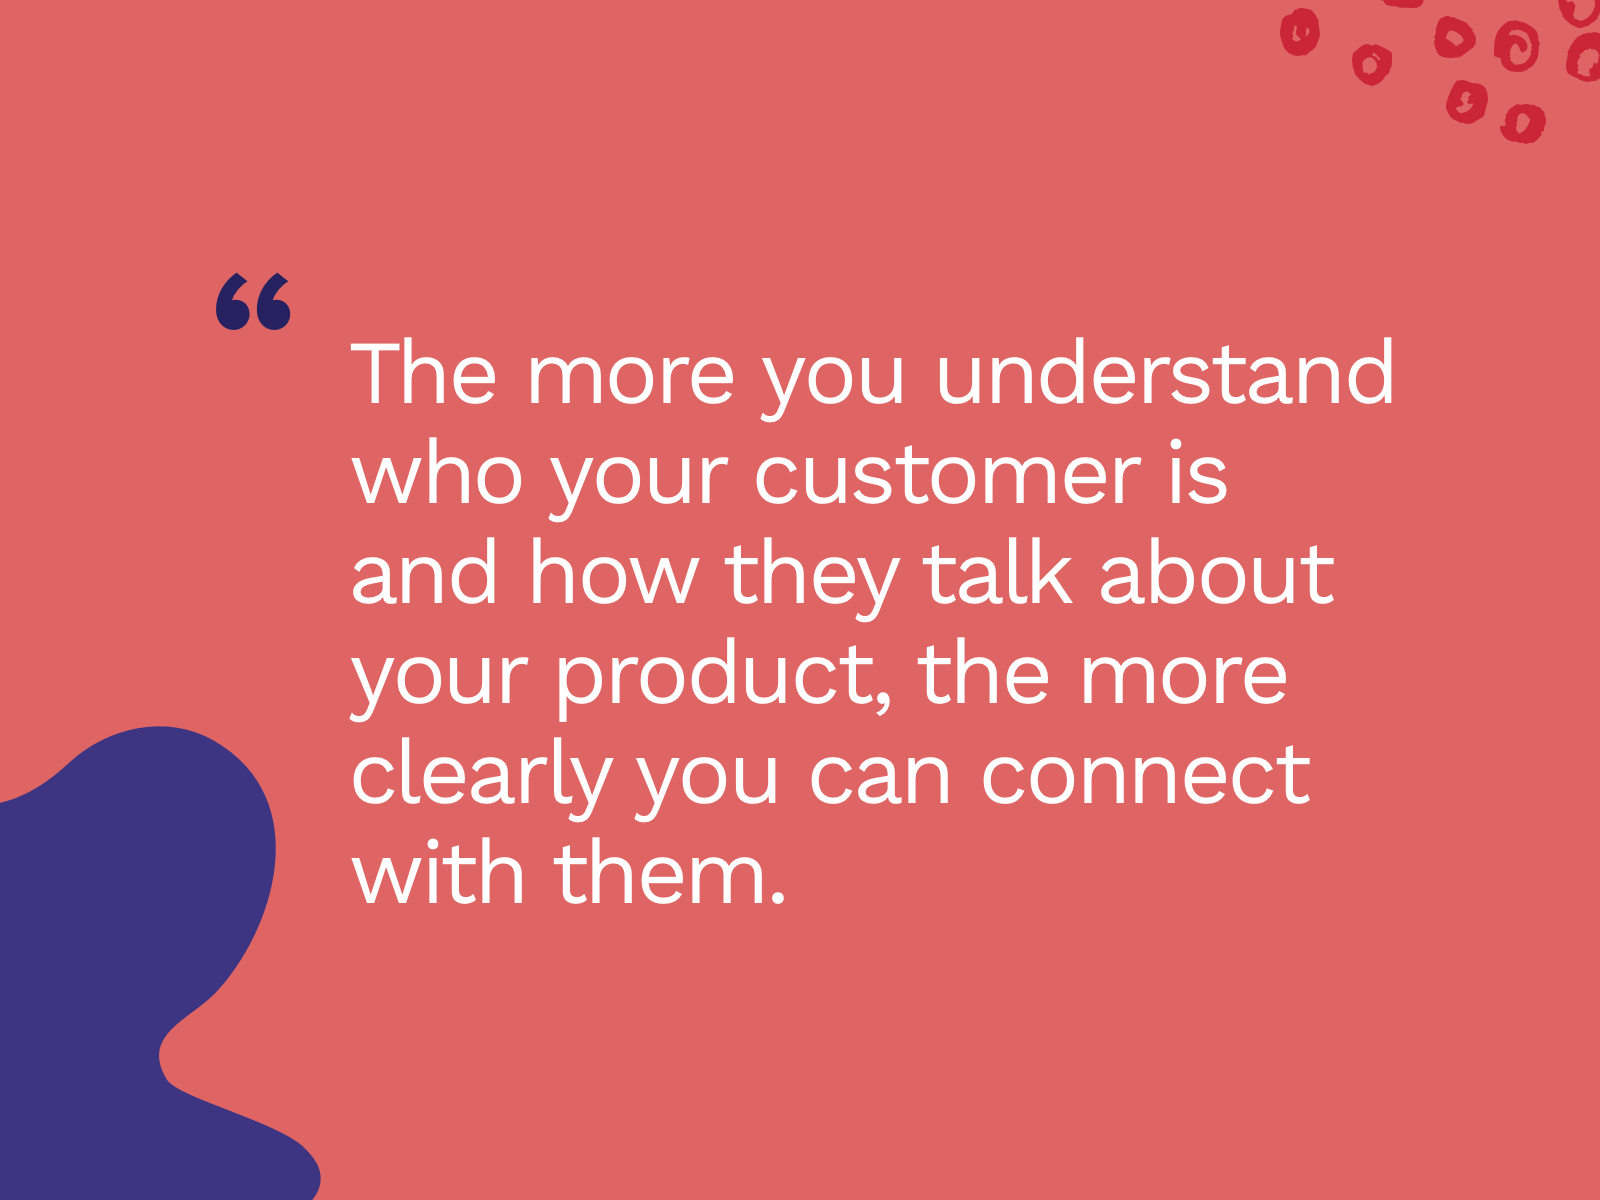 Quote: The more you understand who your customer is and how they talk about your product, the more clearly you can connect with them.""